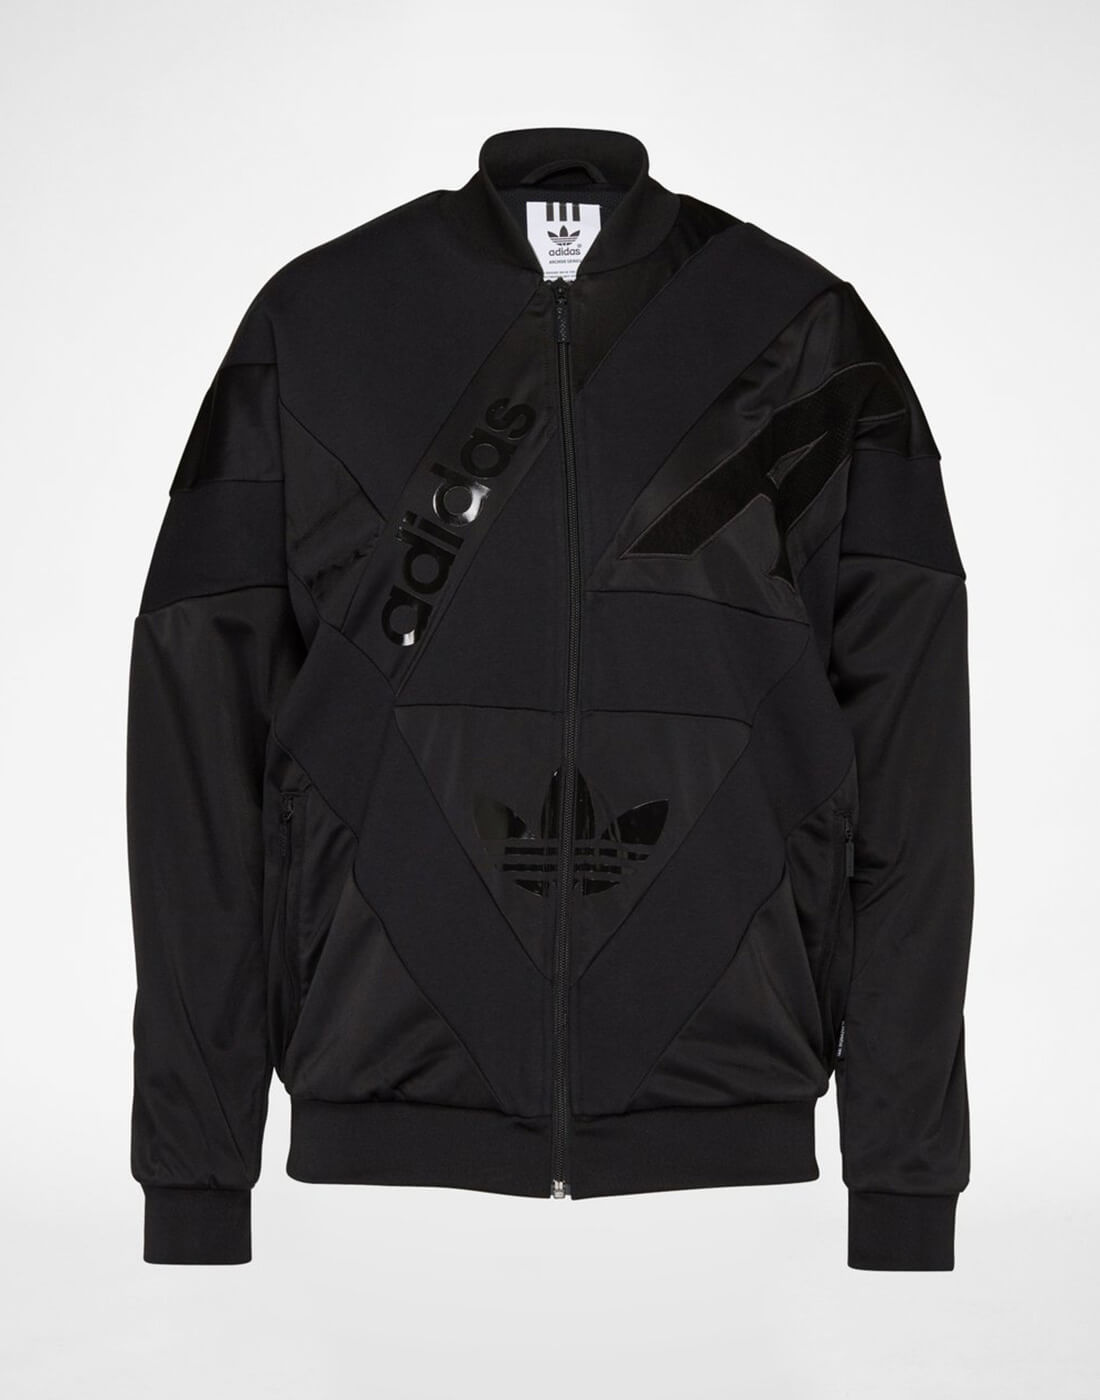 Adidas-Originals-Archive-Series-FW15-8